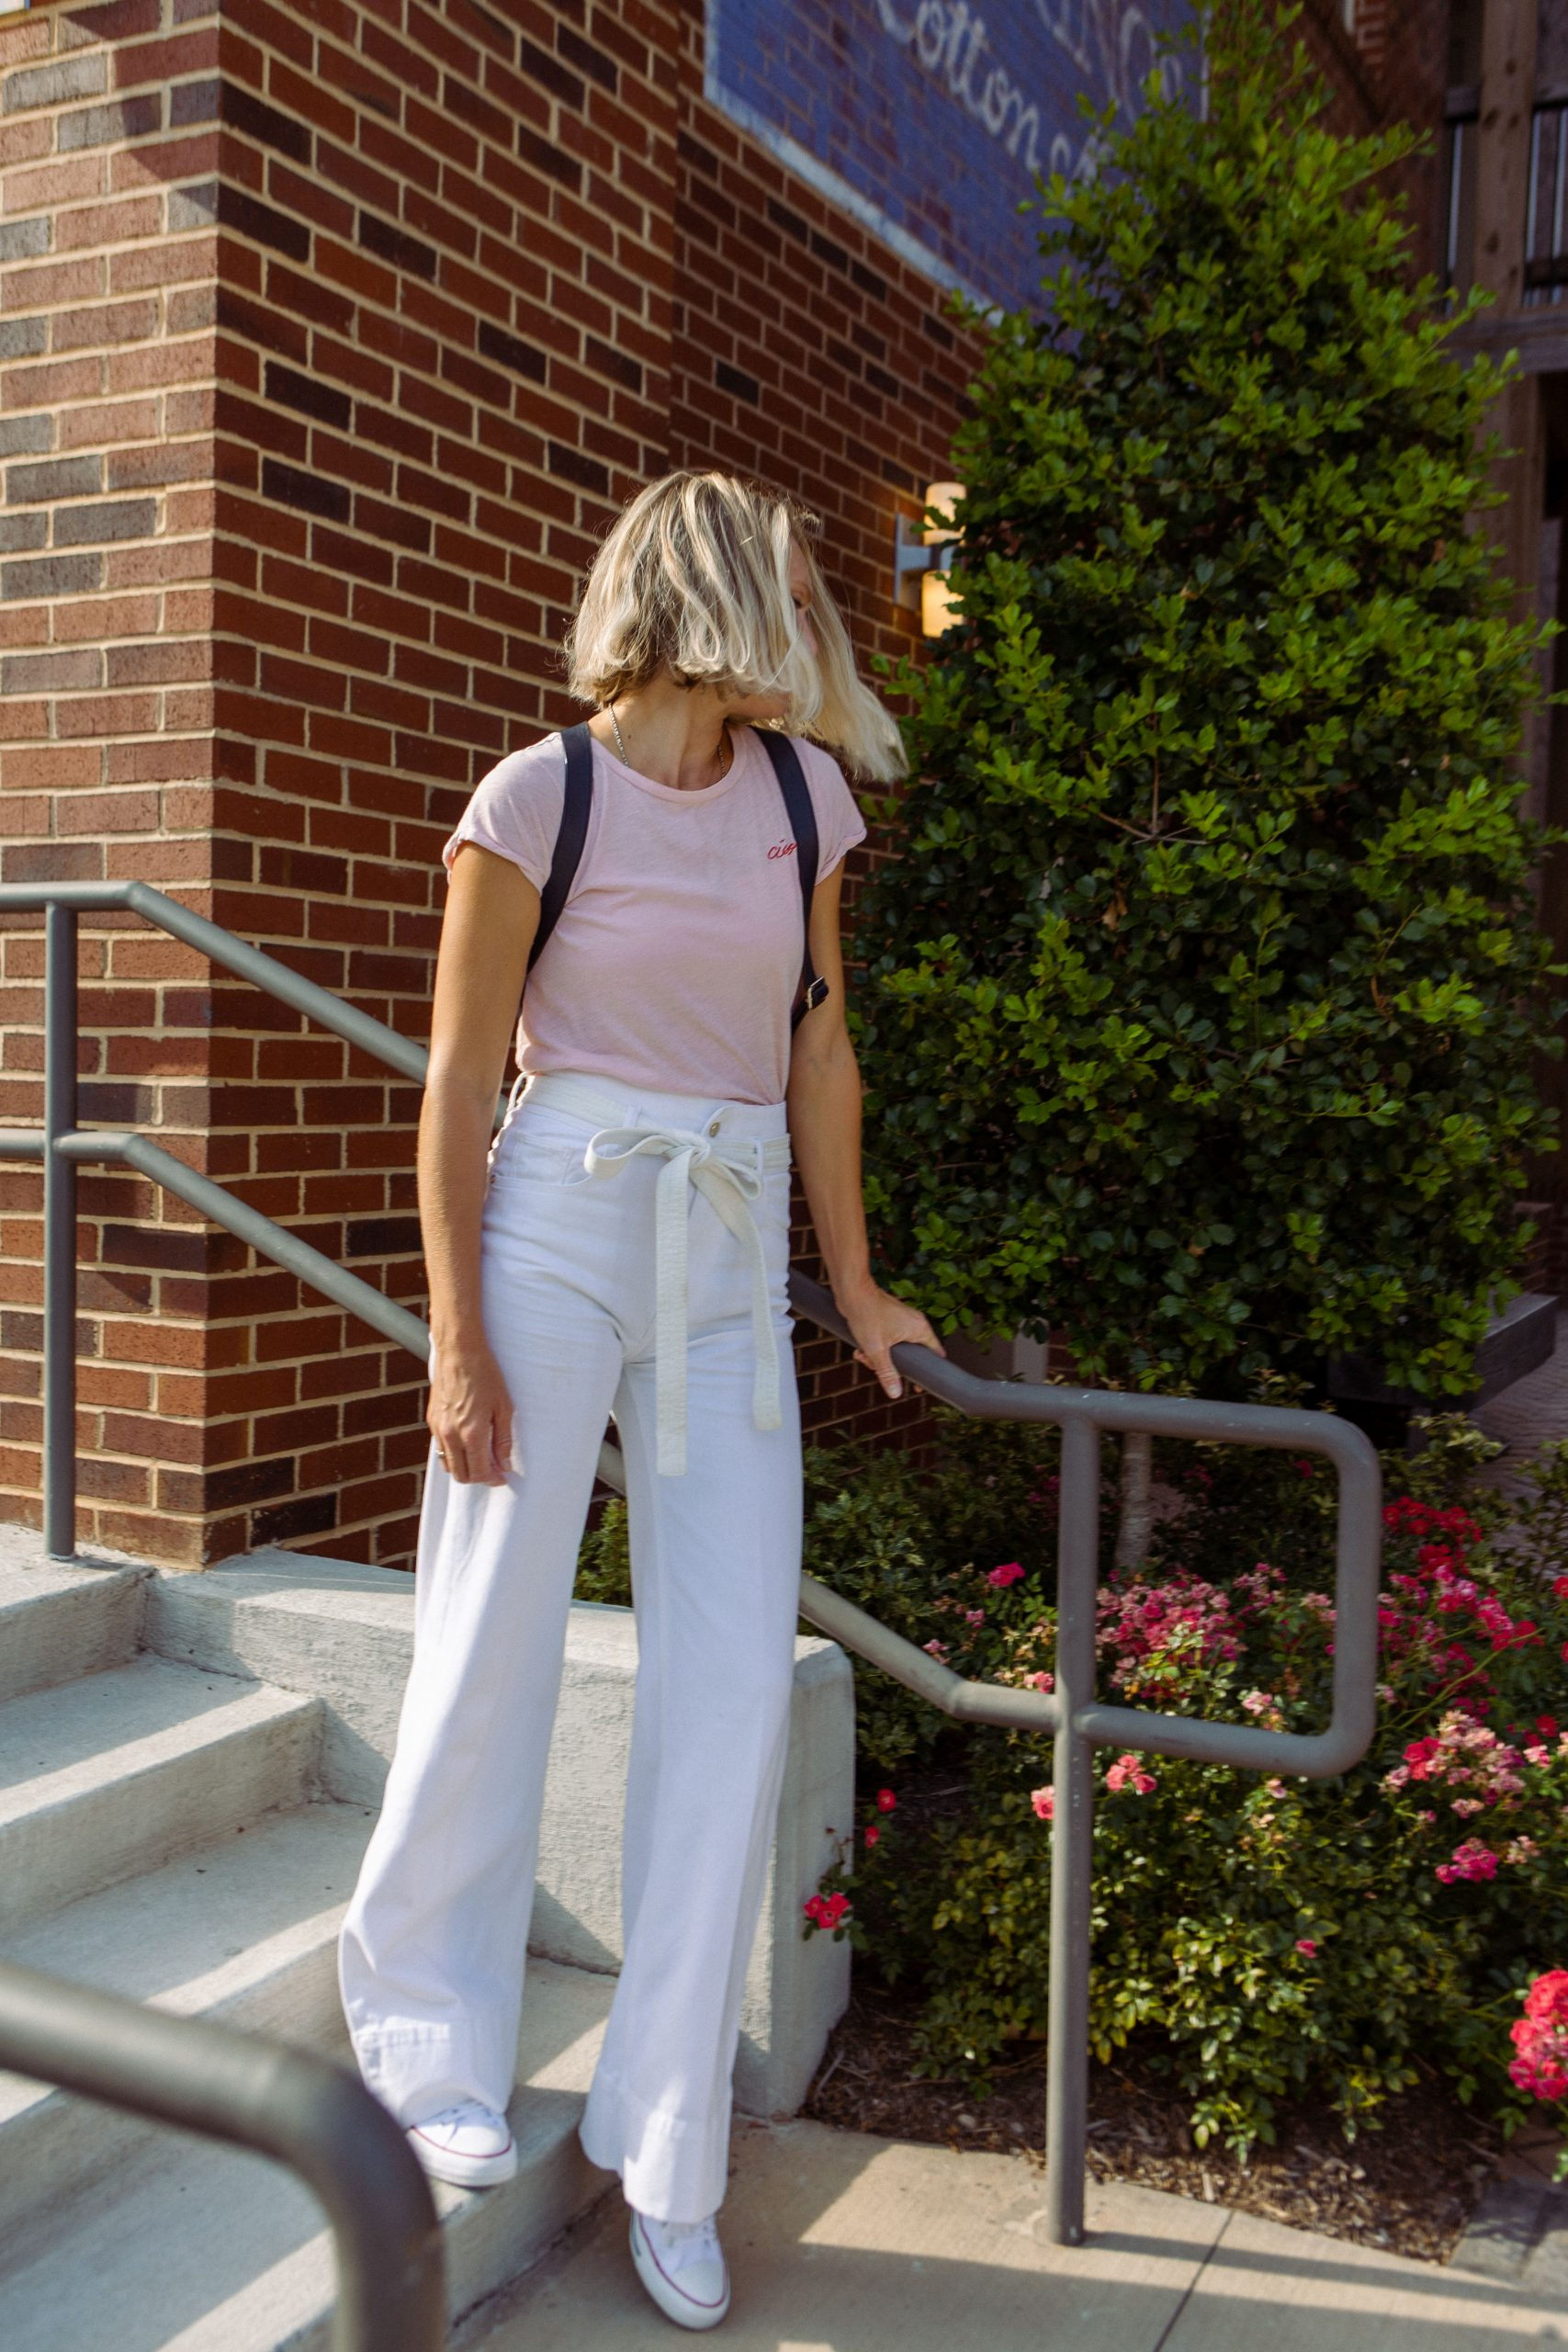 The white DL1961 high-waist, wide-leg jeans are SO GOOD, we're styling 'em for summer & fall. Camis, motos & sweaters...7 cute outfit ideas.